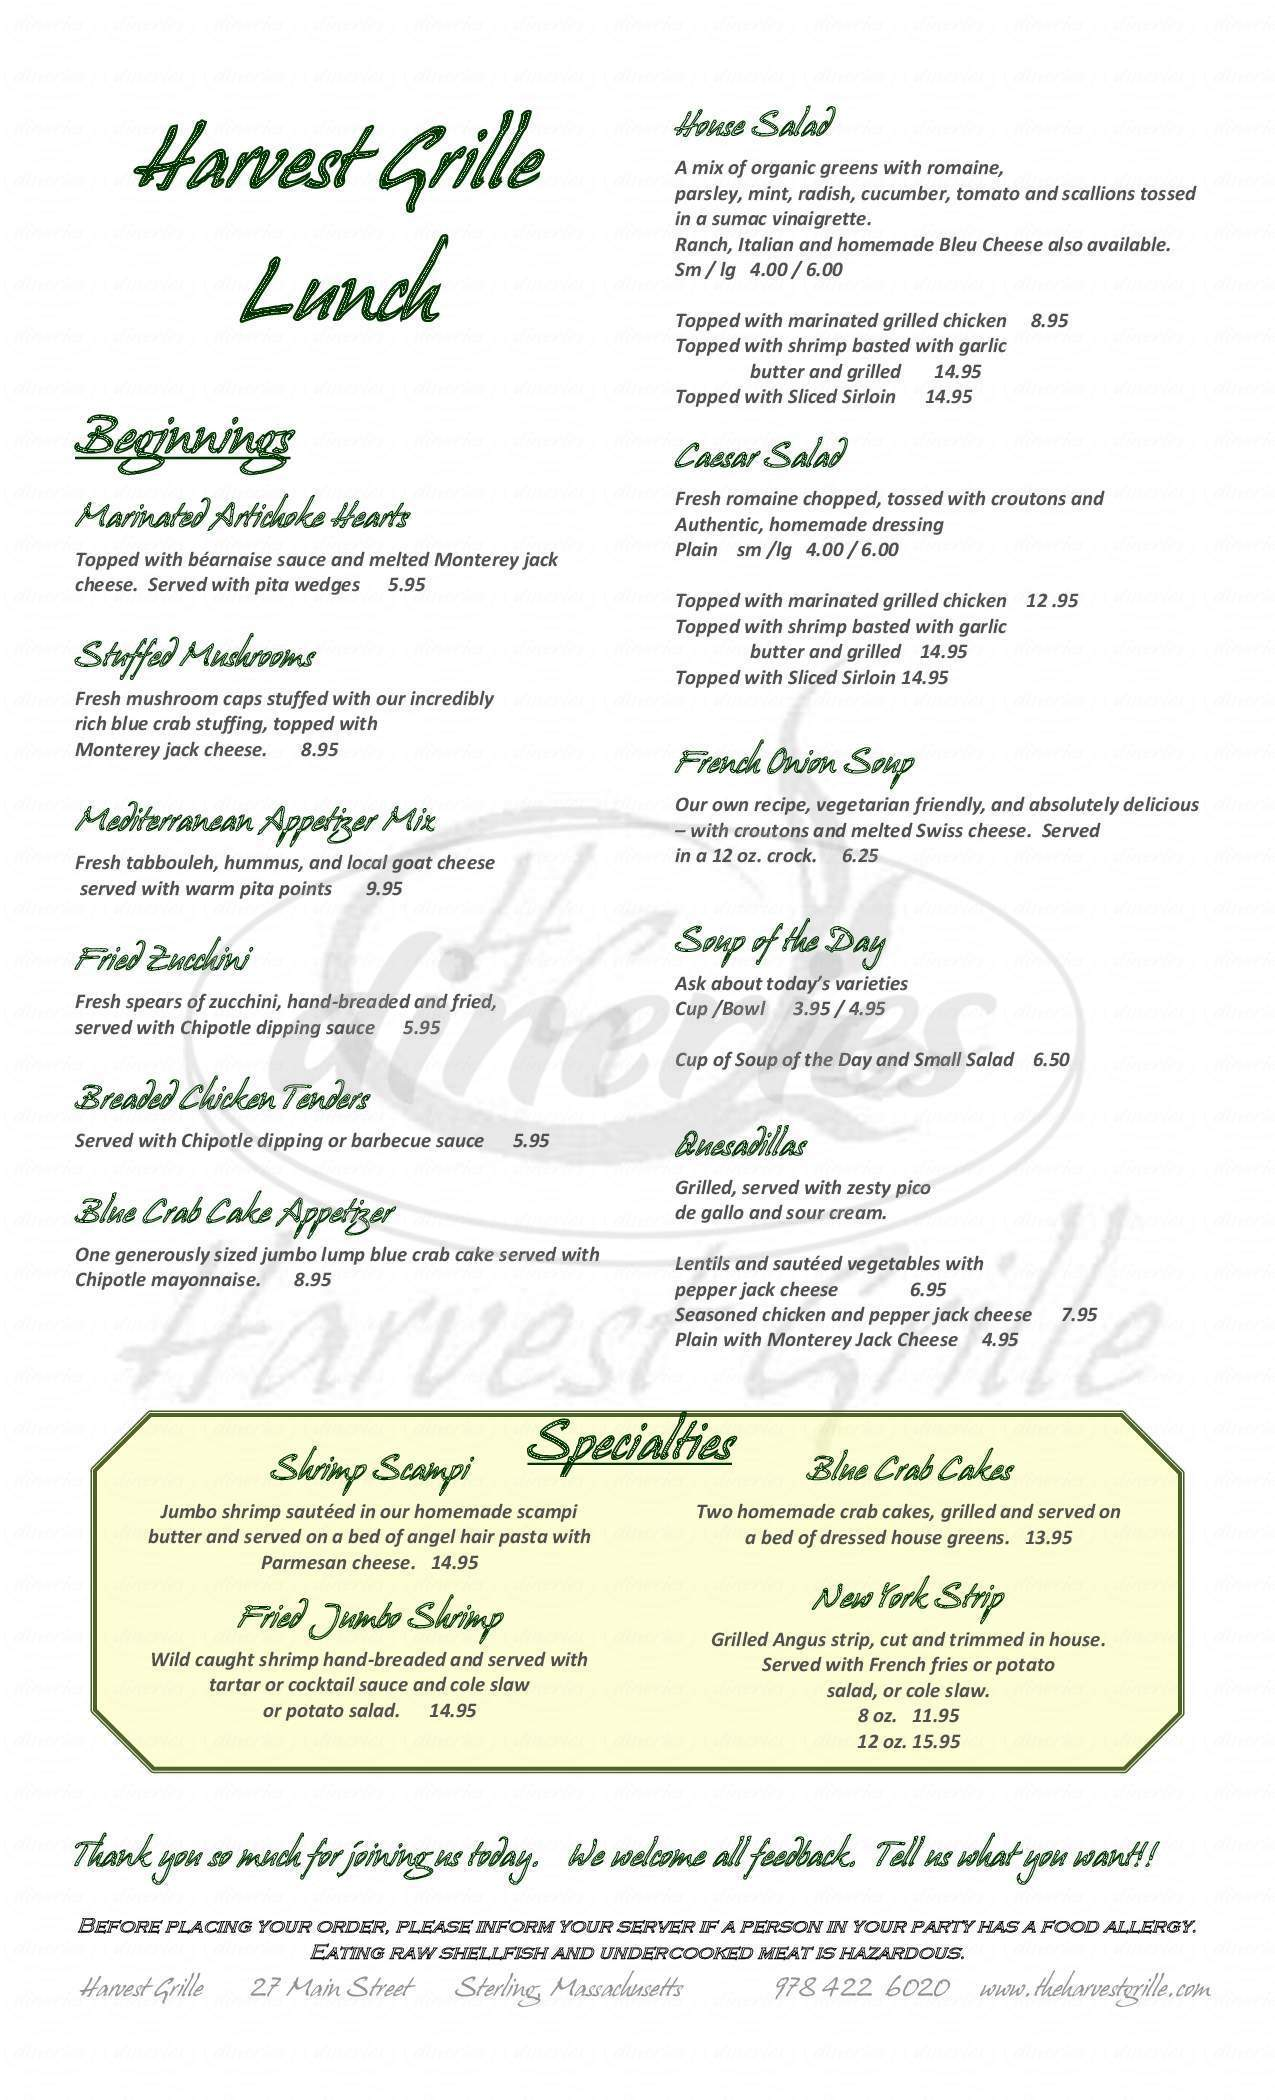 menu for The Harvest Grille